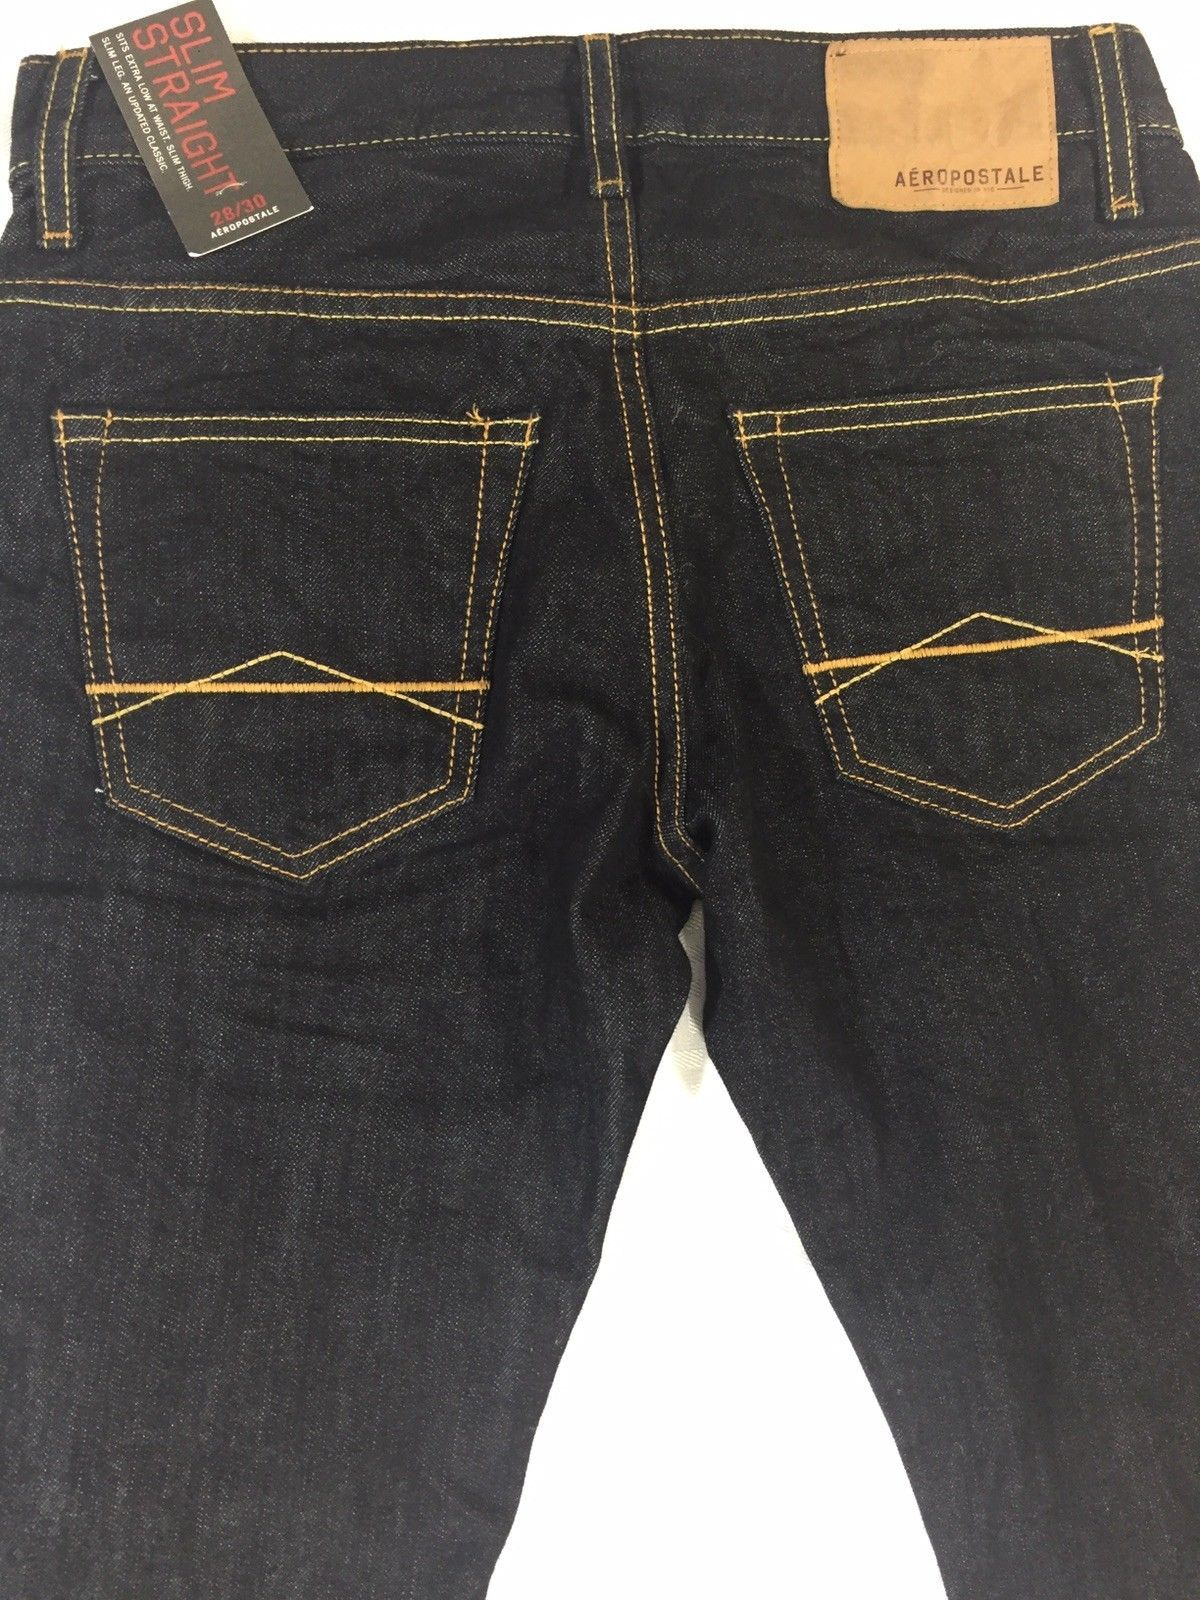 Mens Aeropostale Jeans Slim Straight 28x30 Button Fly Dark Wash Denim Nwt Ebay Mens Jeans Mens Jeans Pockets Jeans